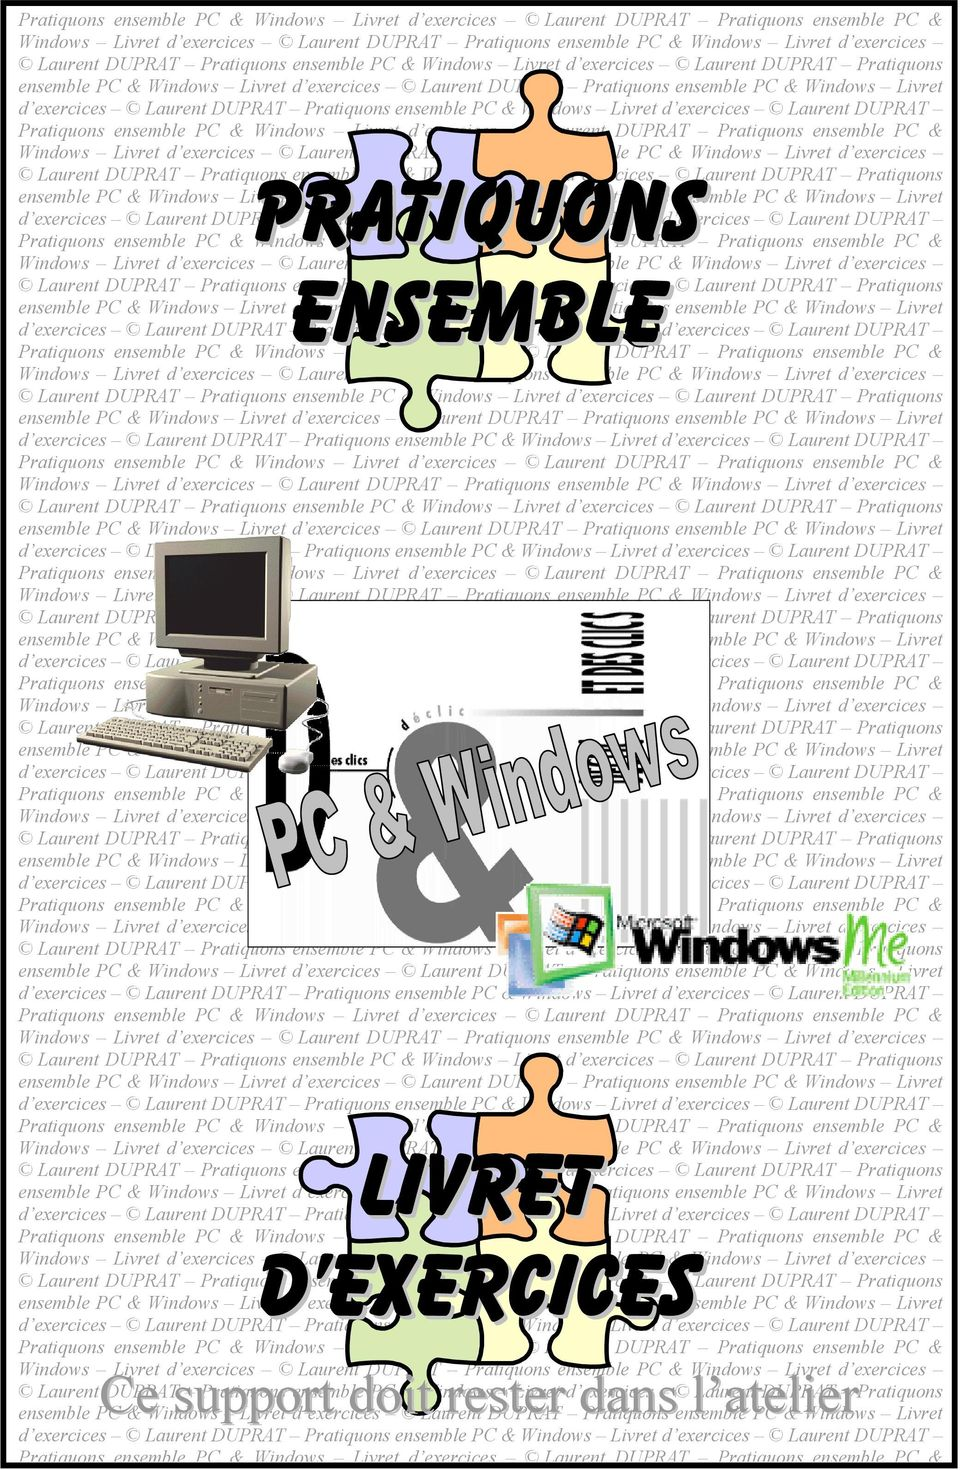 Windows Livret d exercices Laurent DUPRAT ensemble PC & Windows Livret d exercices Laurent DUPRAT ensemble PC & Windows Livret d exercices Laurent DUPRAT  DUPRAT  DUPRAT Pratiquons PC & Windows